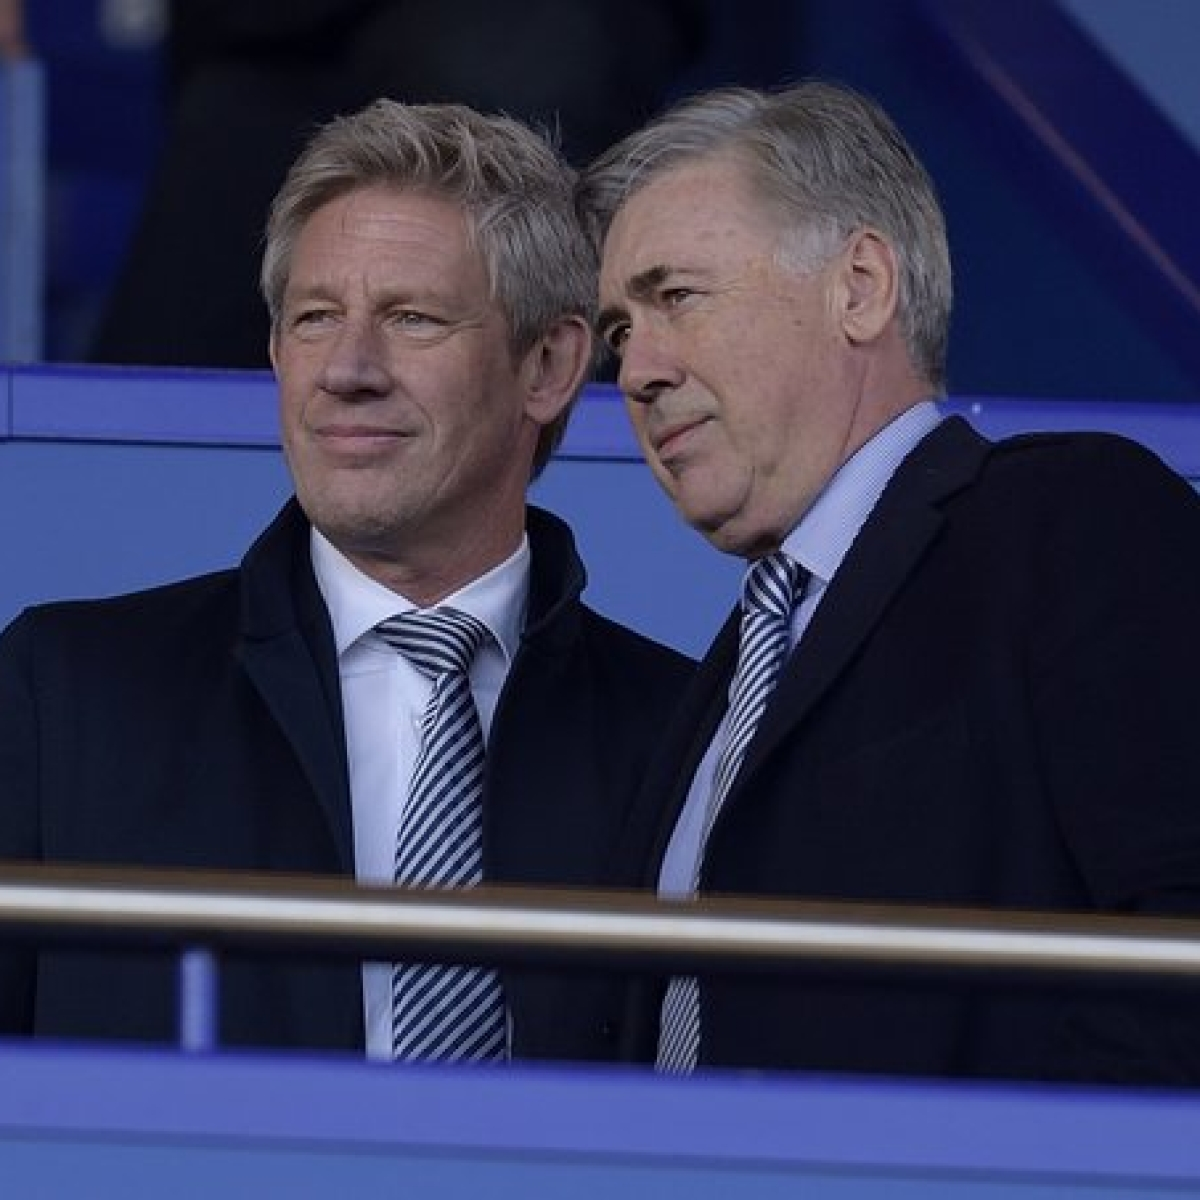 Everton appoint Champions League winner Carlo Ancelotti as manager